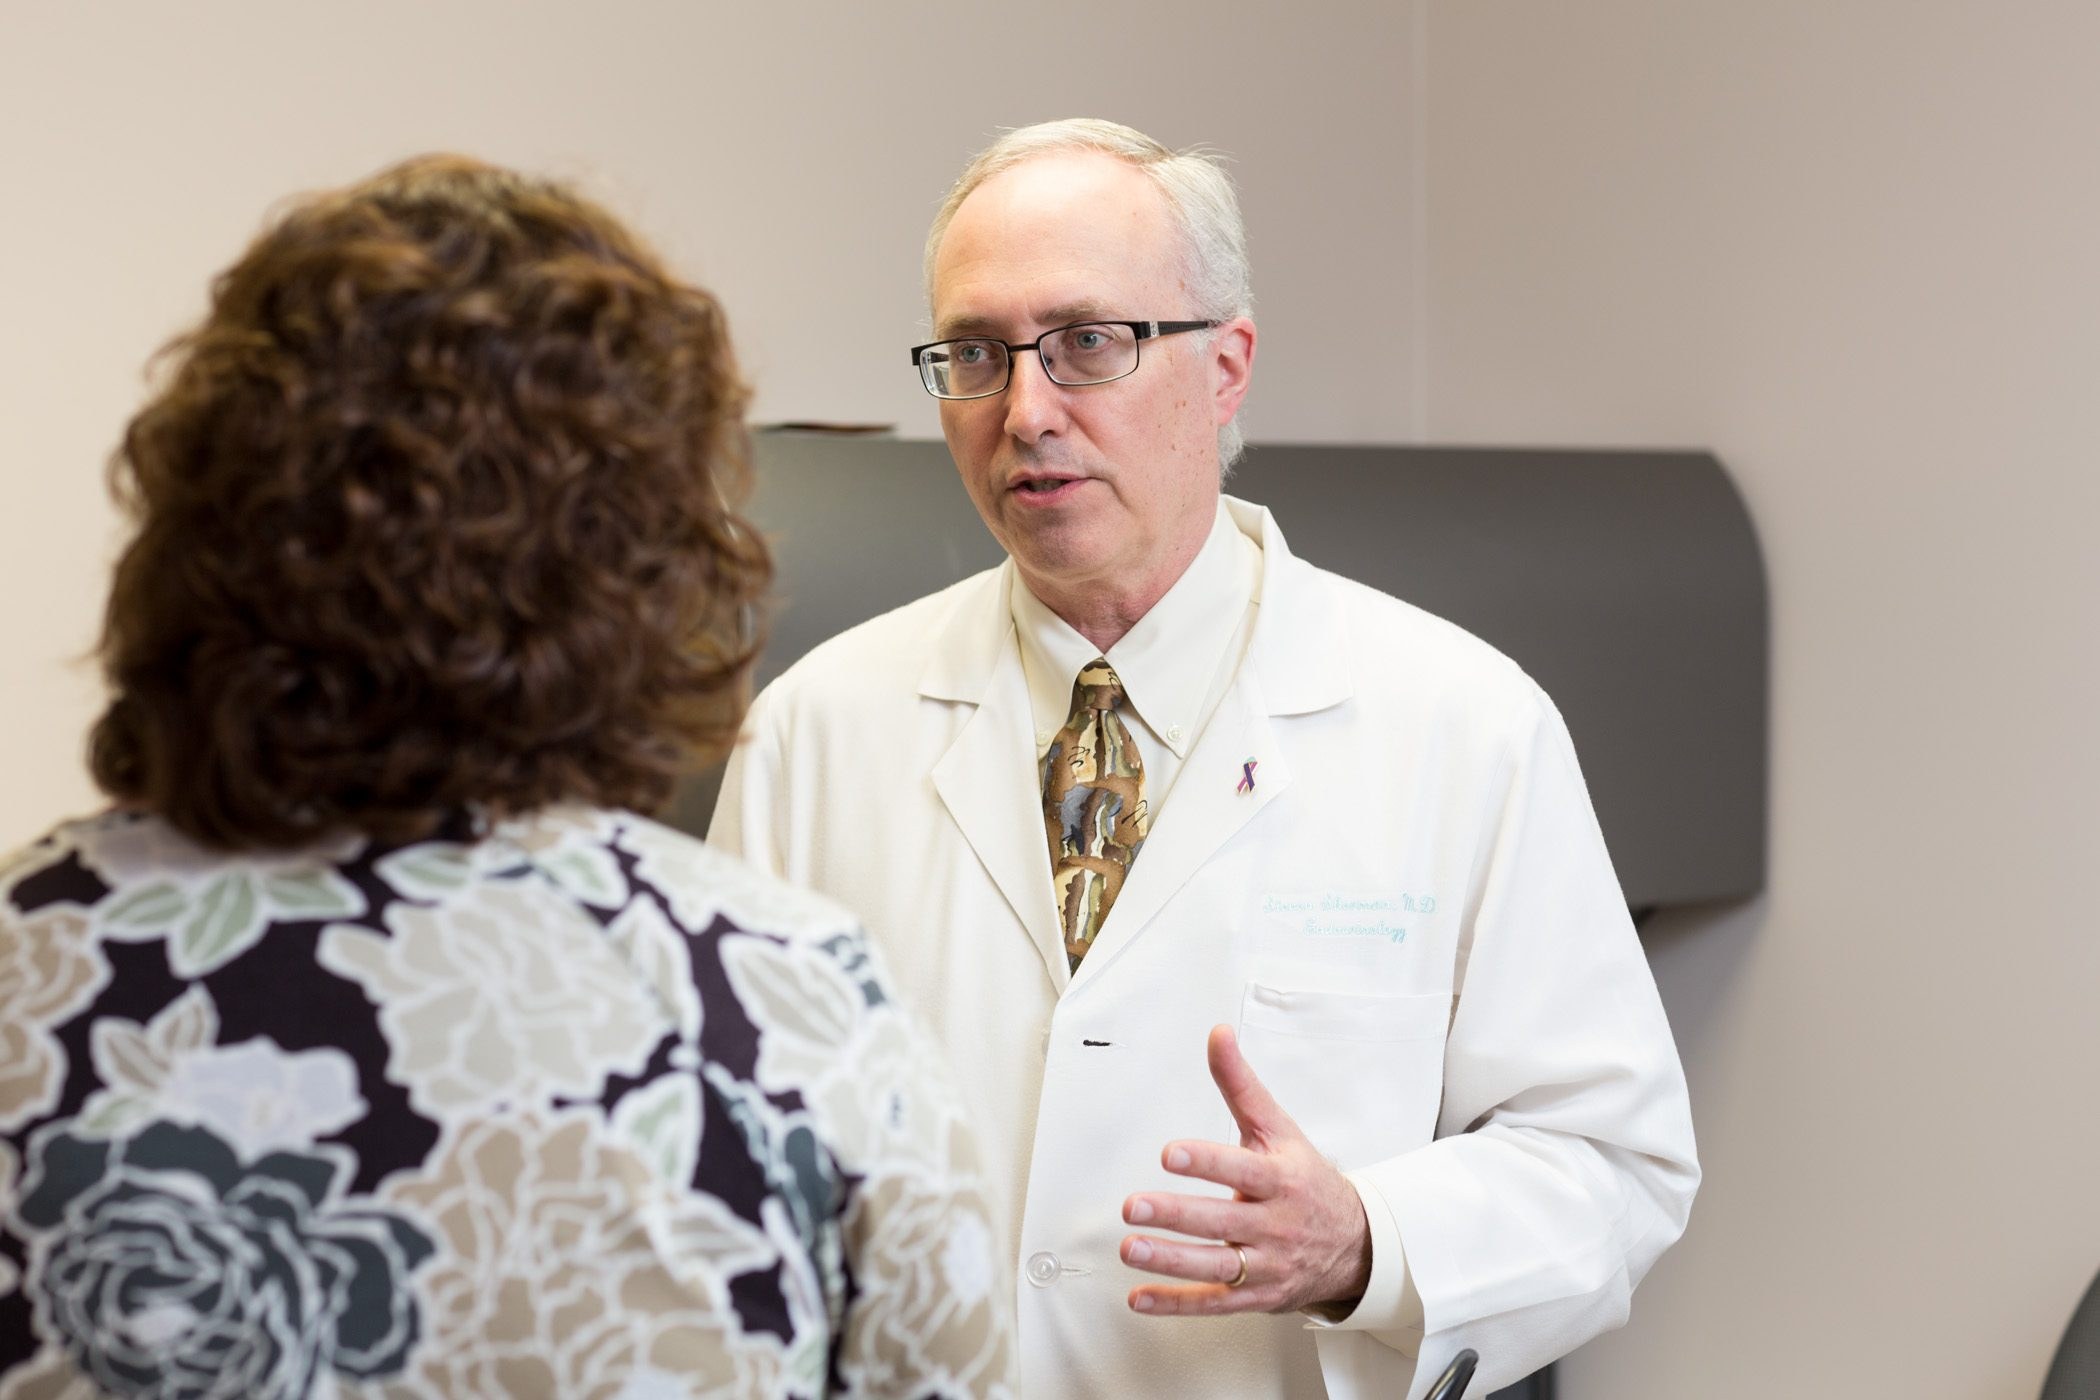 Dr. Sherman meets with patient